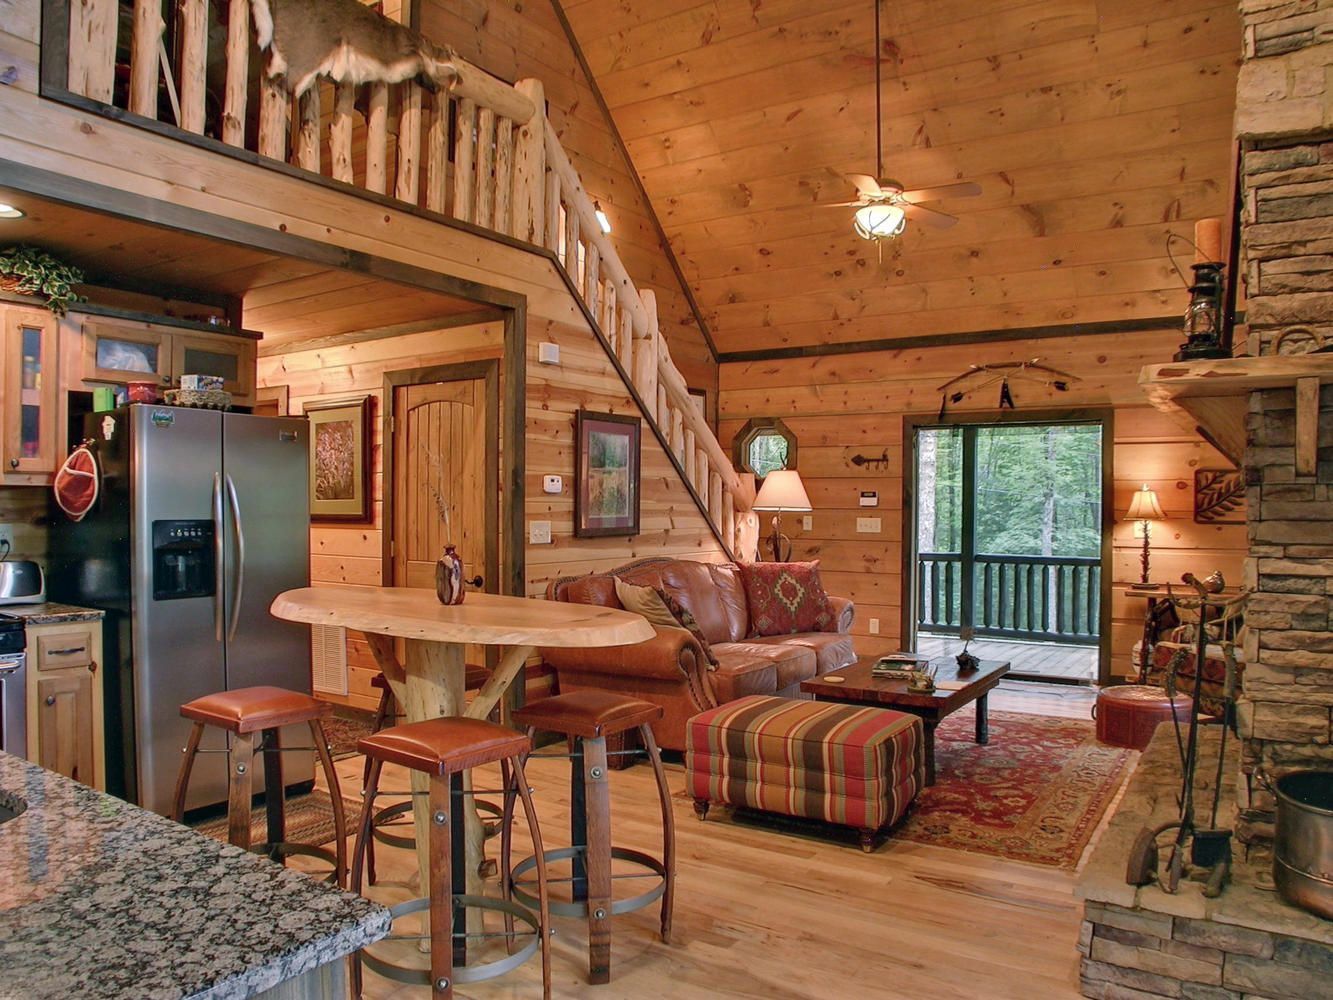 Cabin Style Living Room With A Cozy Country Design Cabin